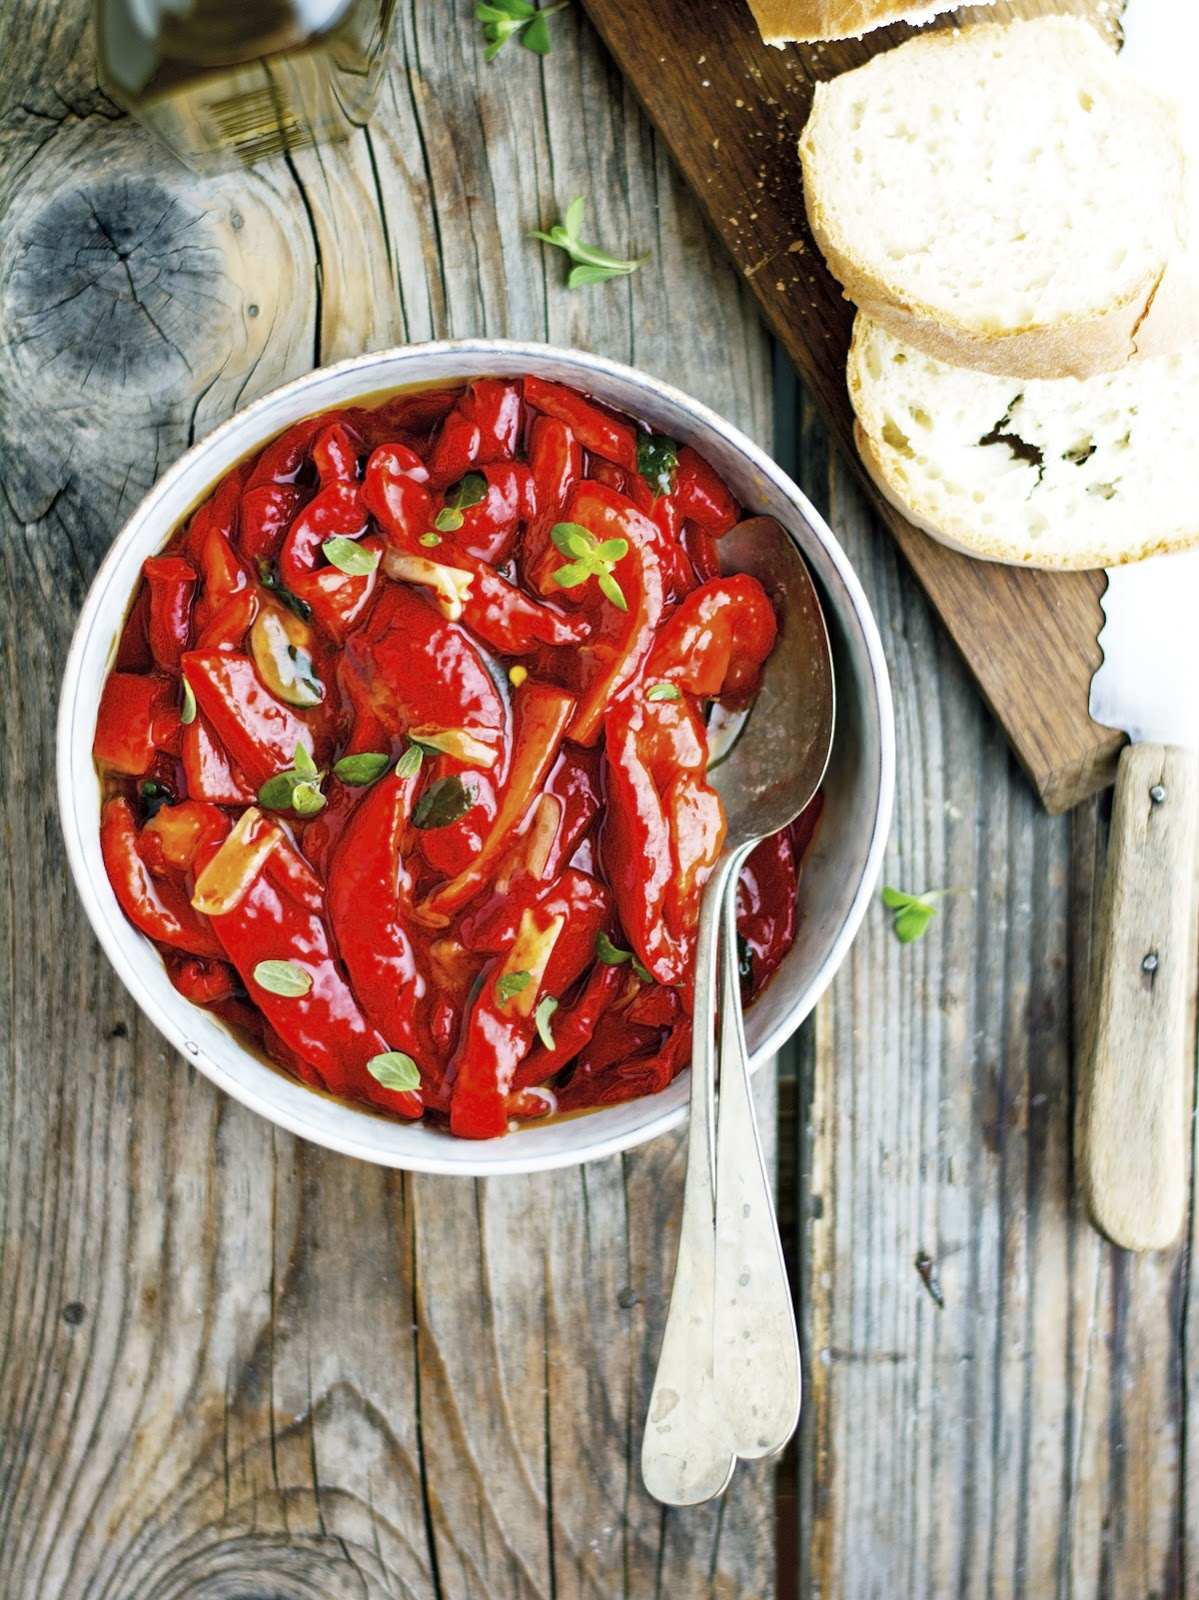 Marinated Red Peppers with Garlic and Oregano